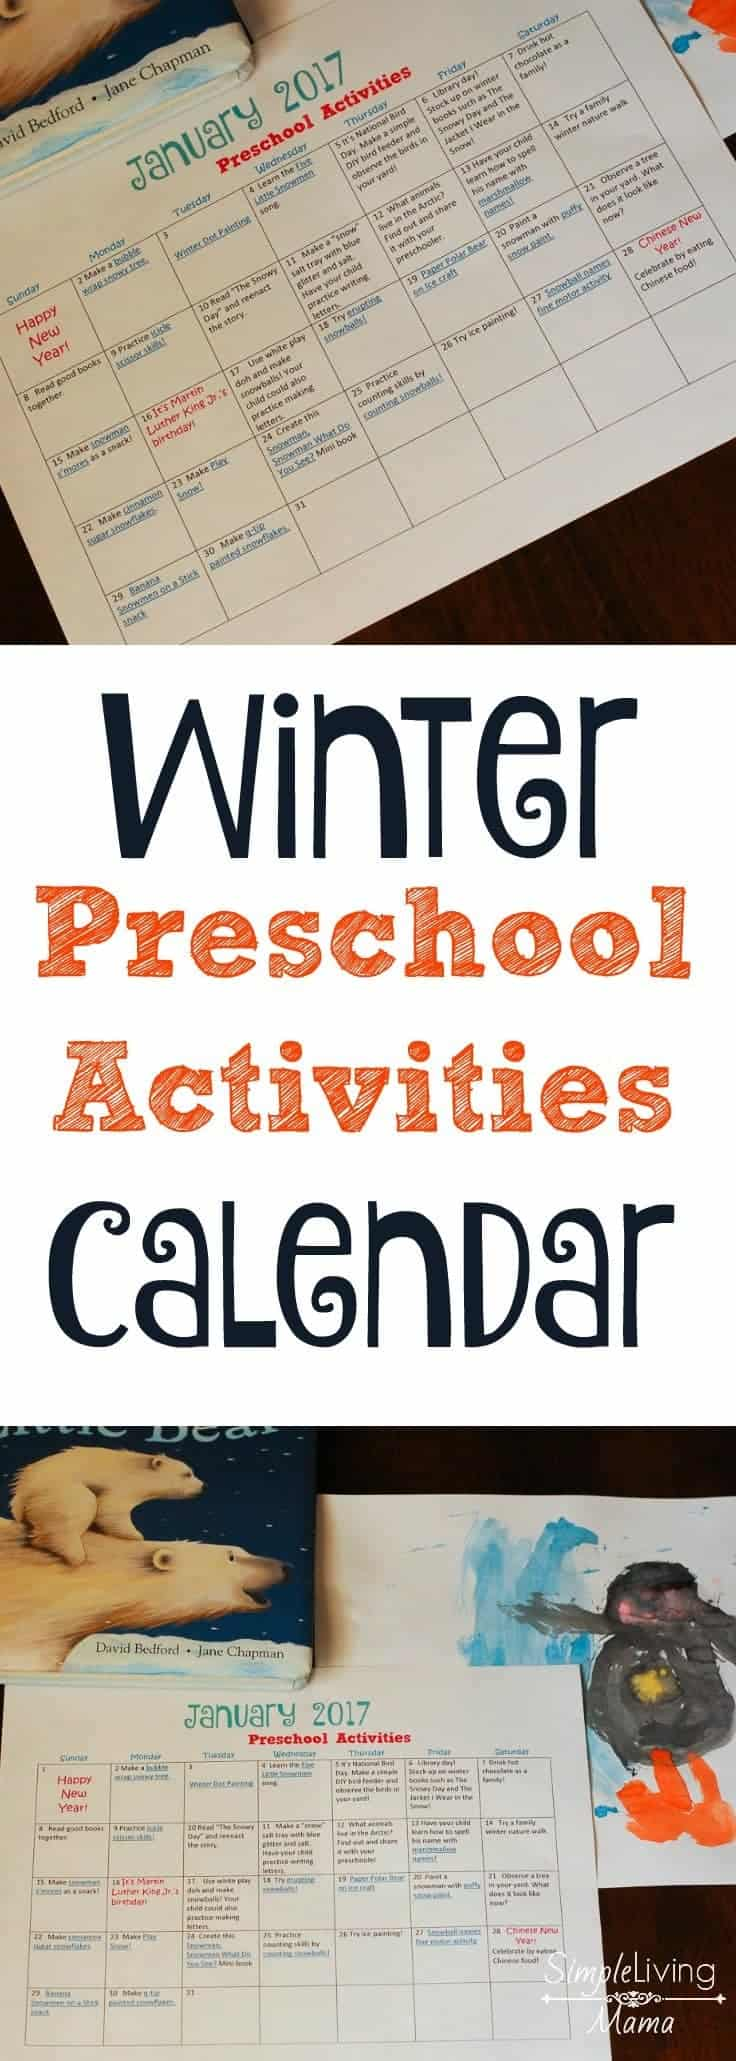 Winter preschool activities calendar | free calendar with winter preschool activities